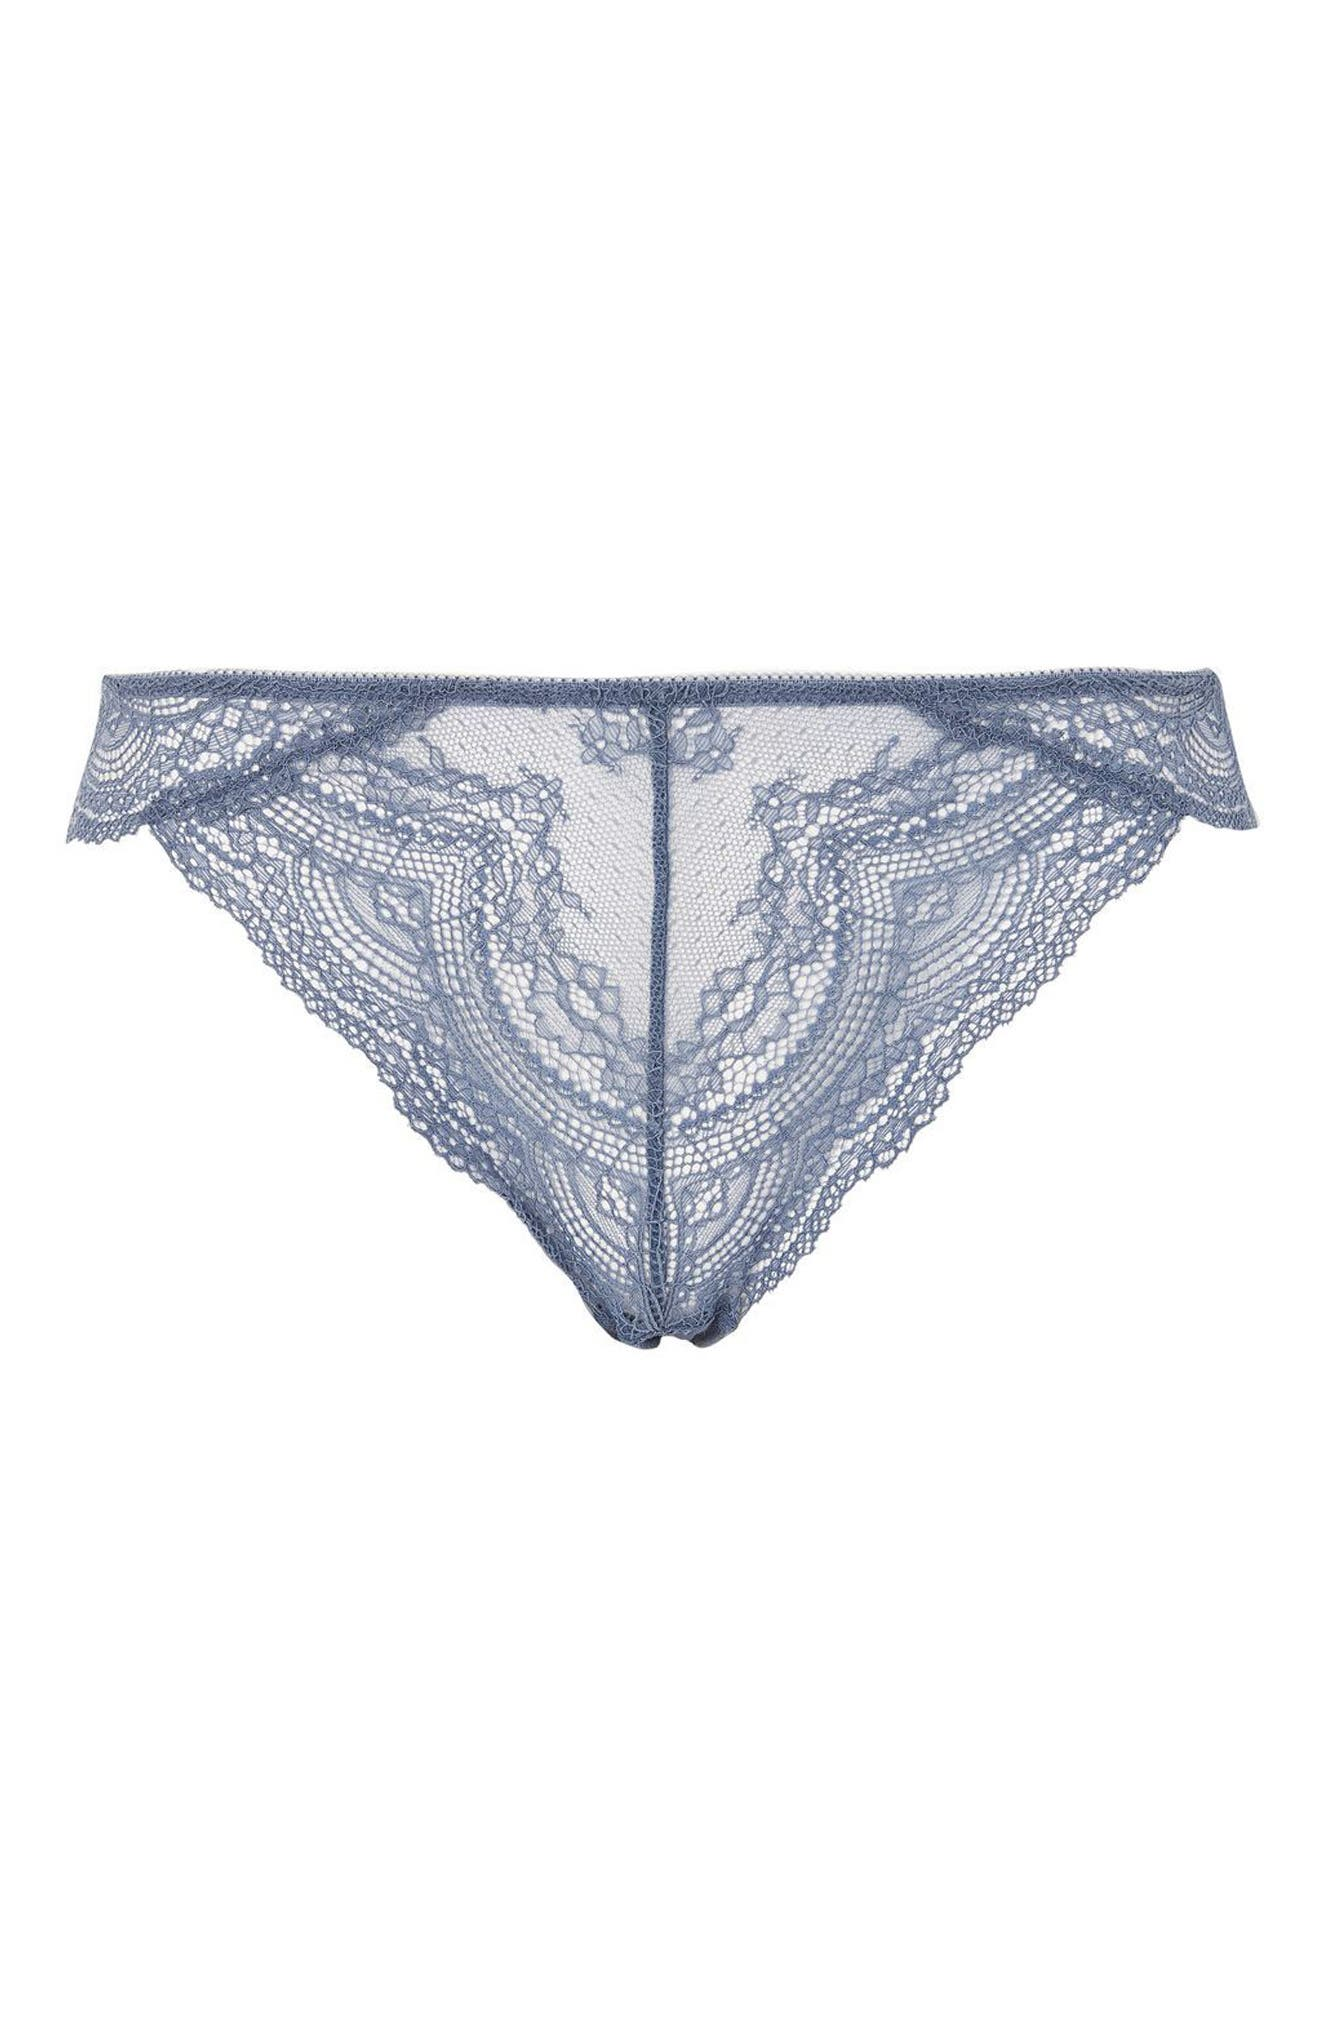 Alternate Image 3  - Topshop Camilla Lace Brazilian Panties